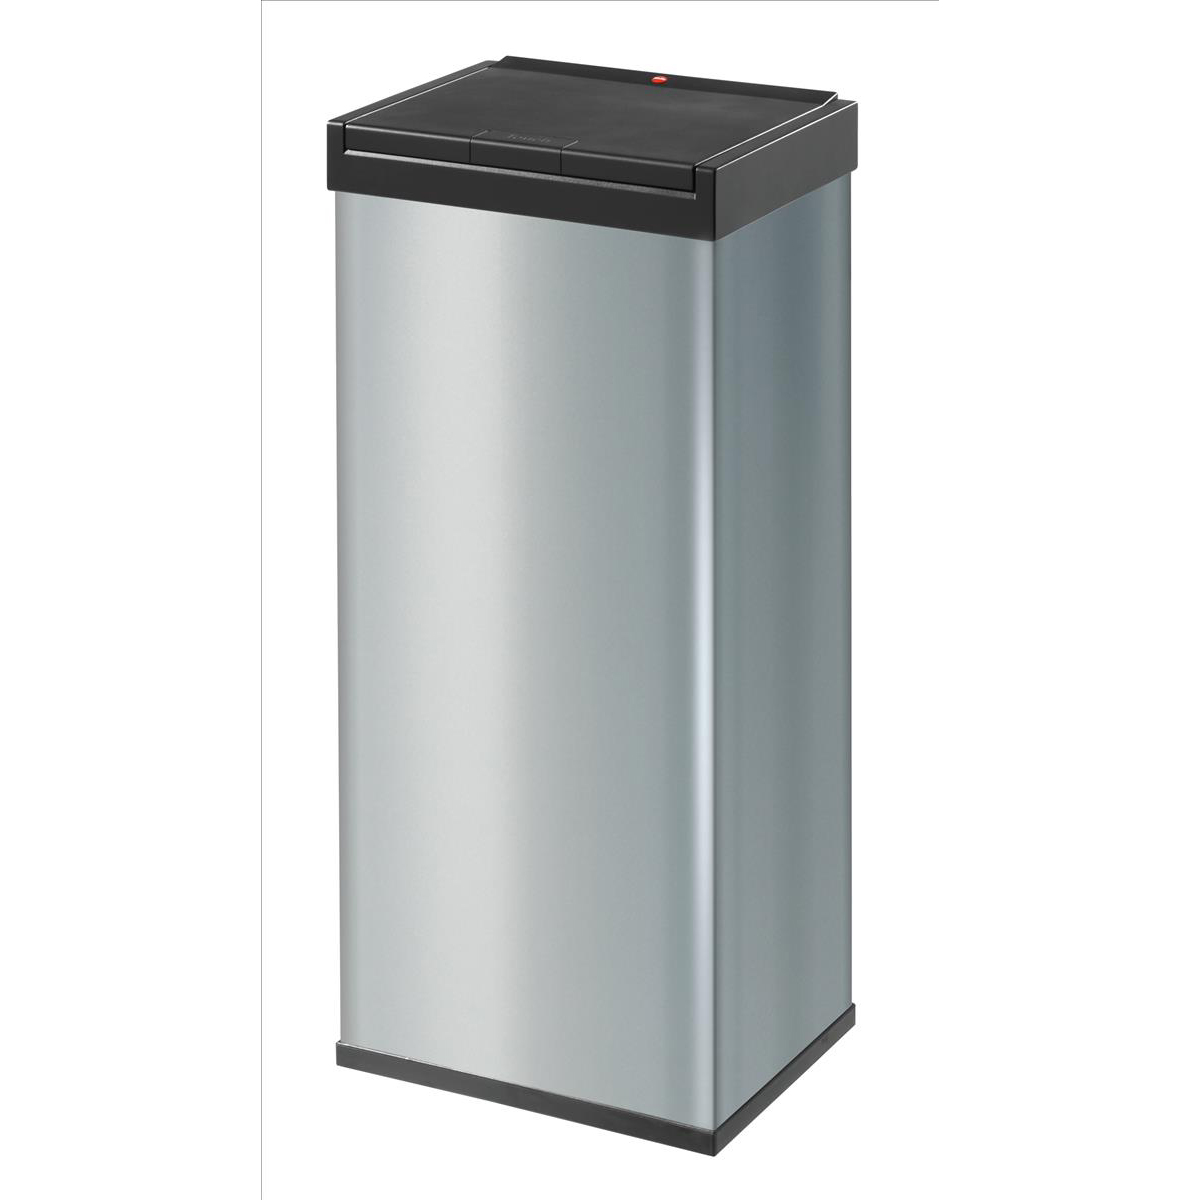 Rubbish Bins Big Bin Touch Steel and Impact-resistant Plastic Flat Packed 60 Litre Silver Ref 0860-601